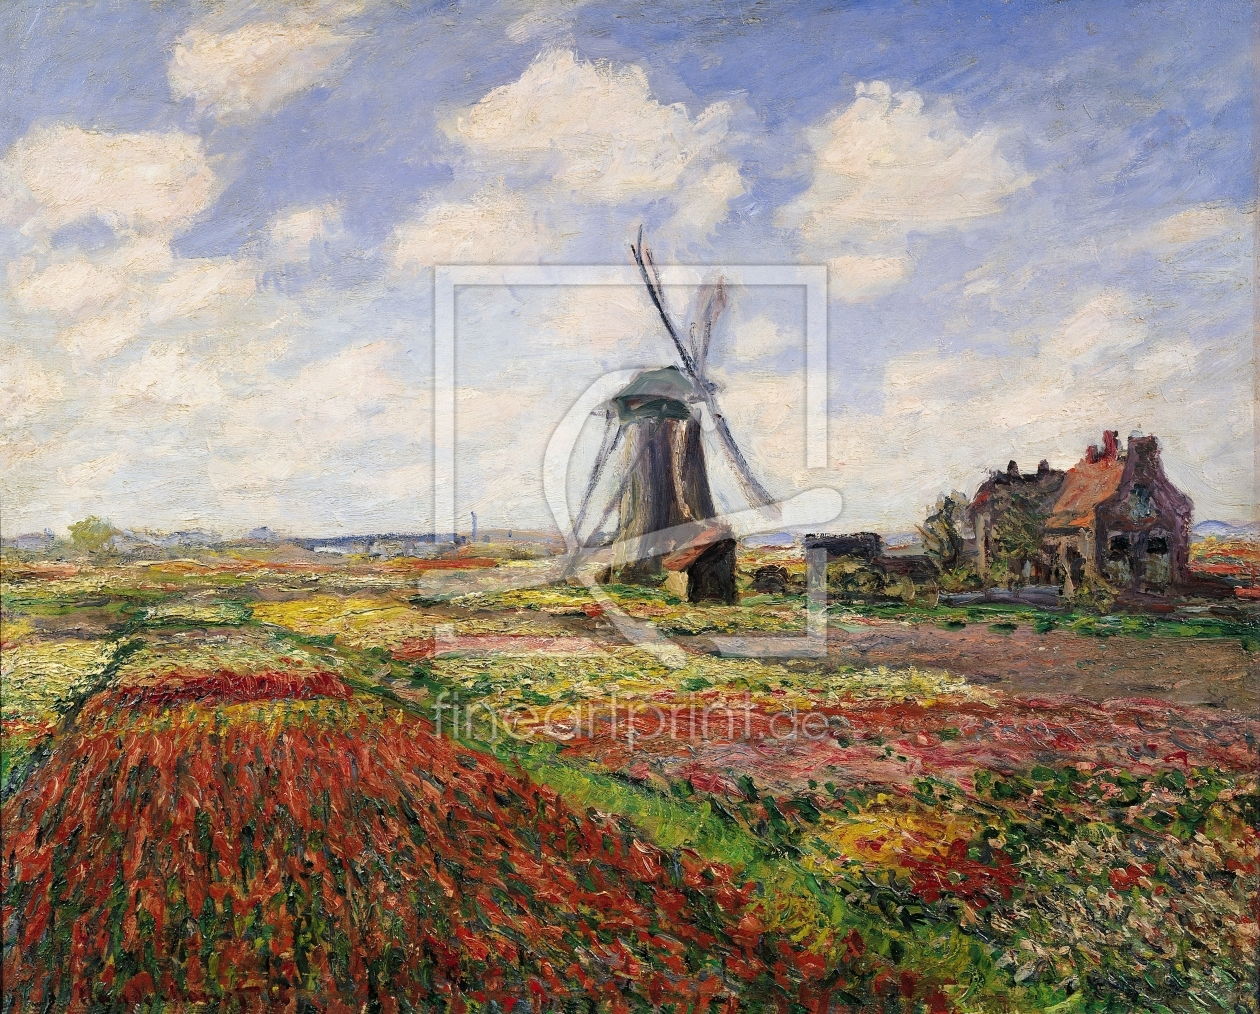 Bild-Nr.: 31000876 Tulip Fields with the Rijnsburg Windmill, 1886 erstellt von Monet, Claude